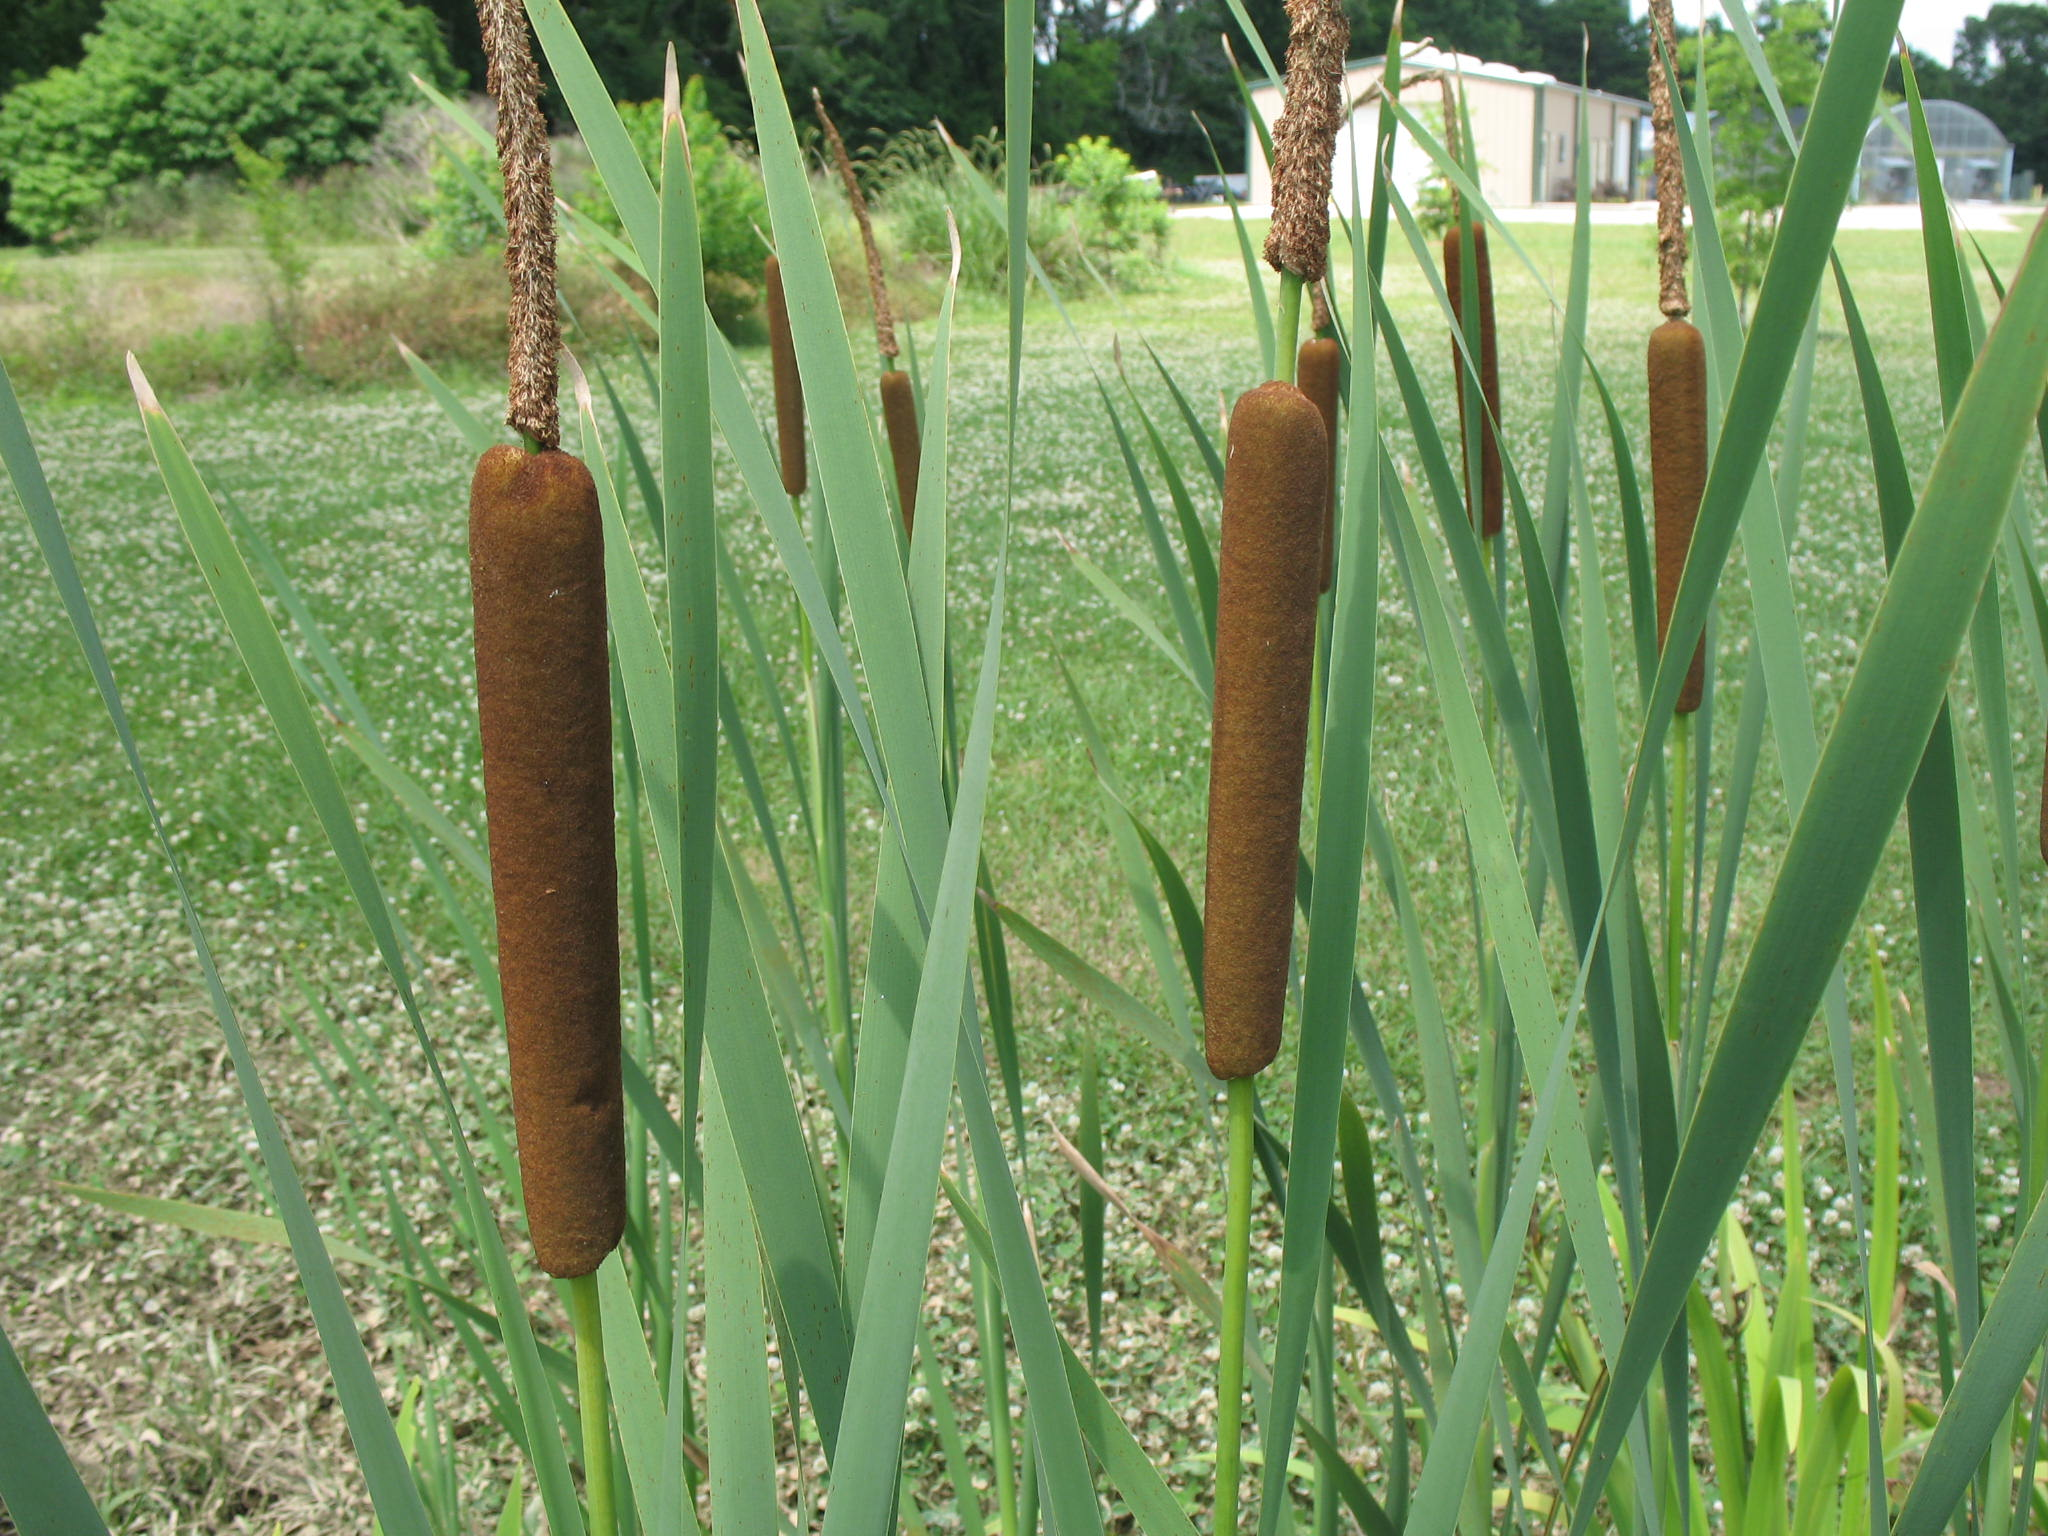 Typha latifolia / Typha latifolia